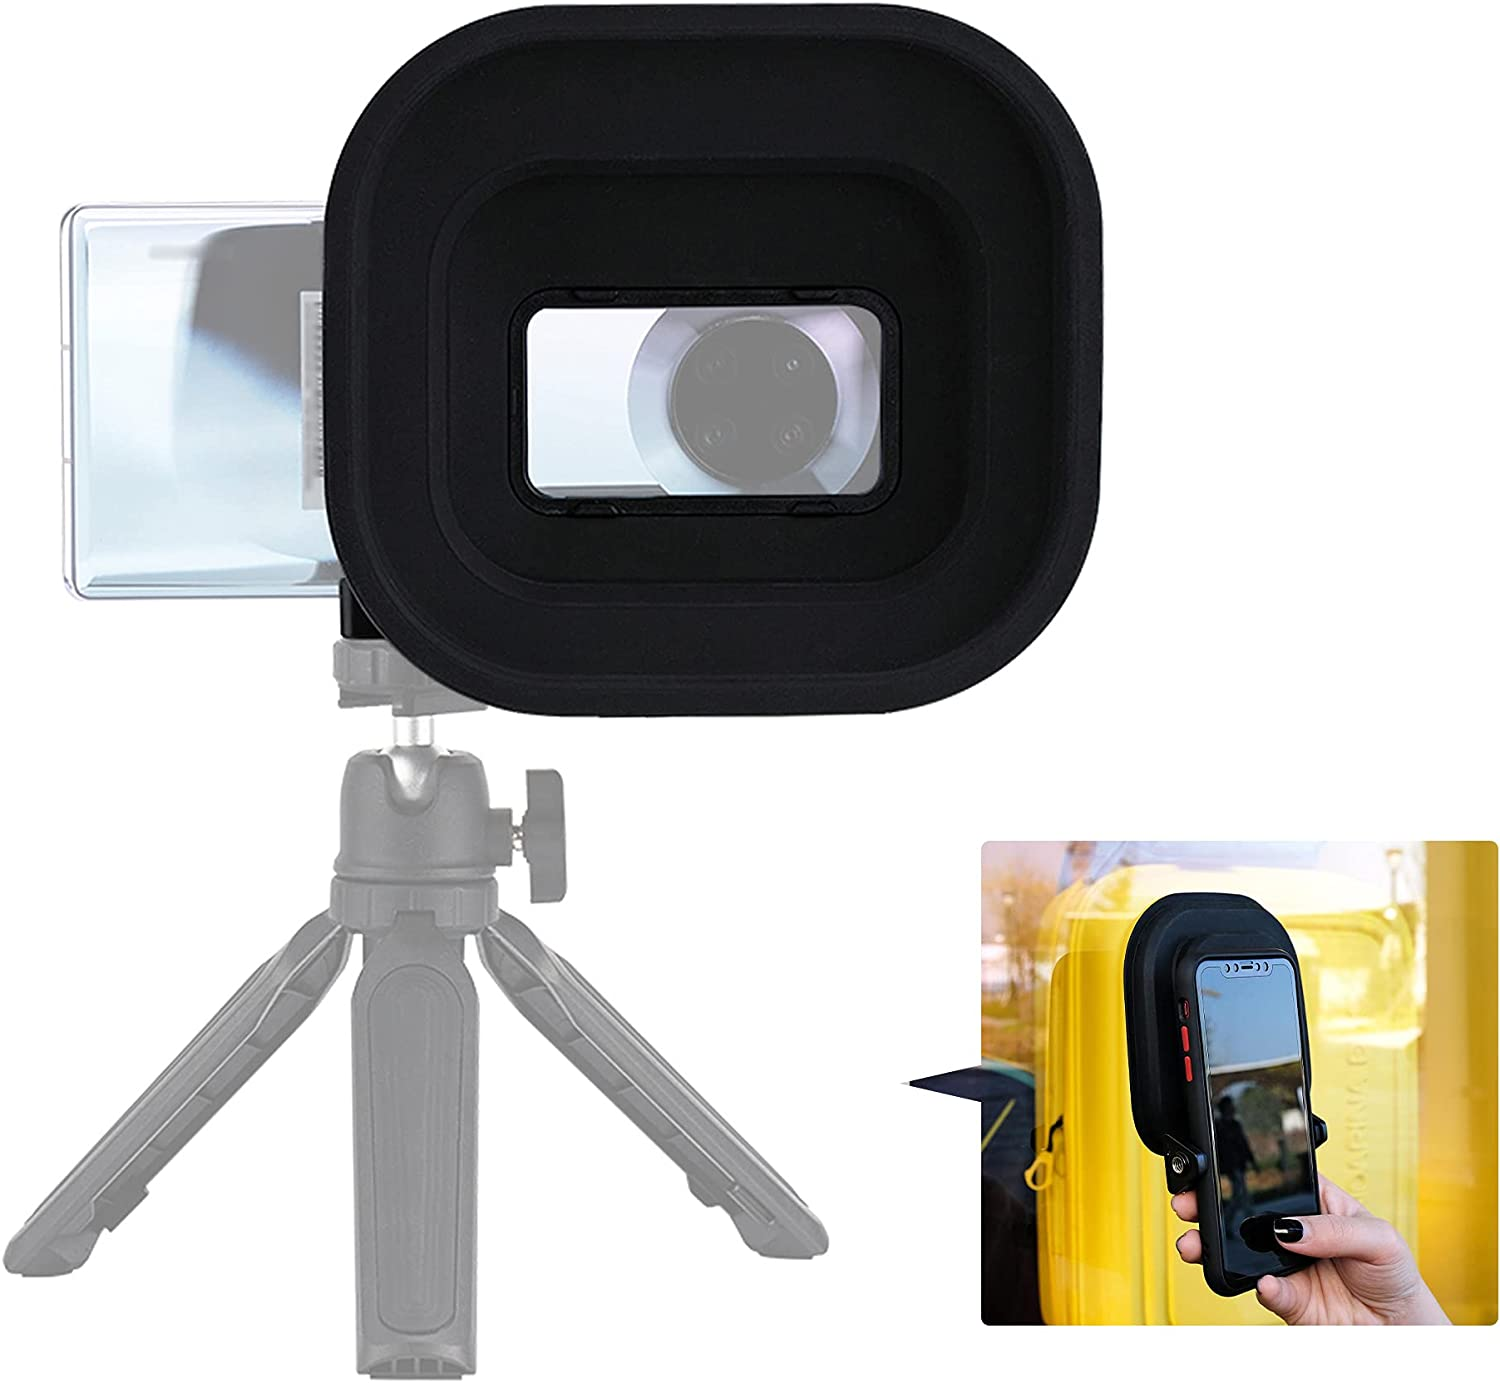 Anti-Reflection Lens Hood for Camera on The Center of The Phone,Smartphone Clip Tripod Mount for Mate 40 RS 40 Pro Motorola Moto G7 Plus E7 G Play,Cell Phone Hood for Photos Video Through Glass